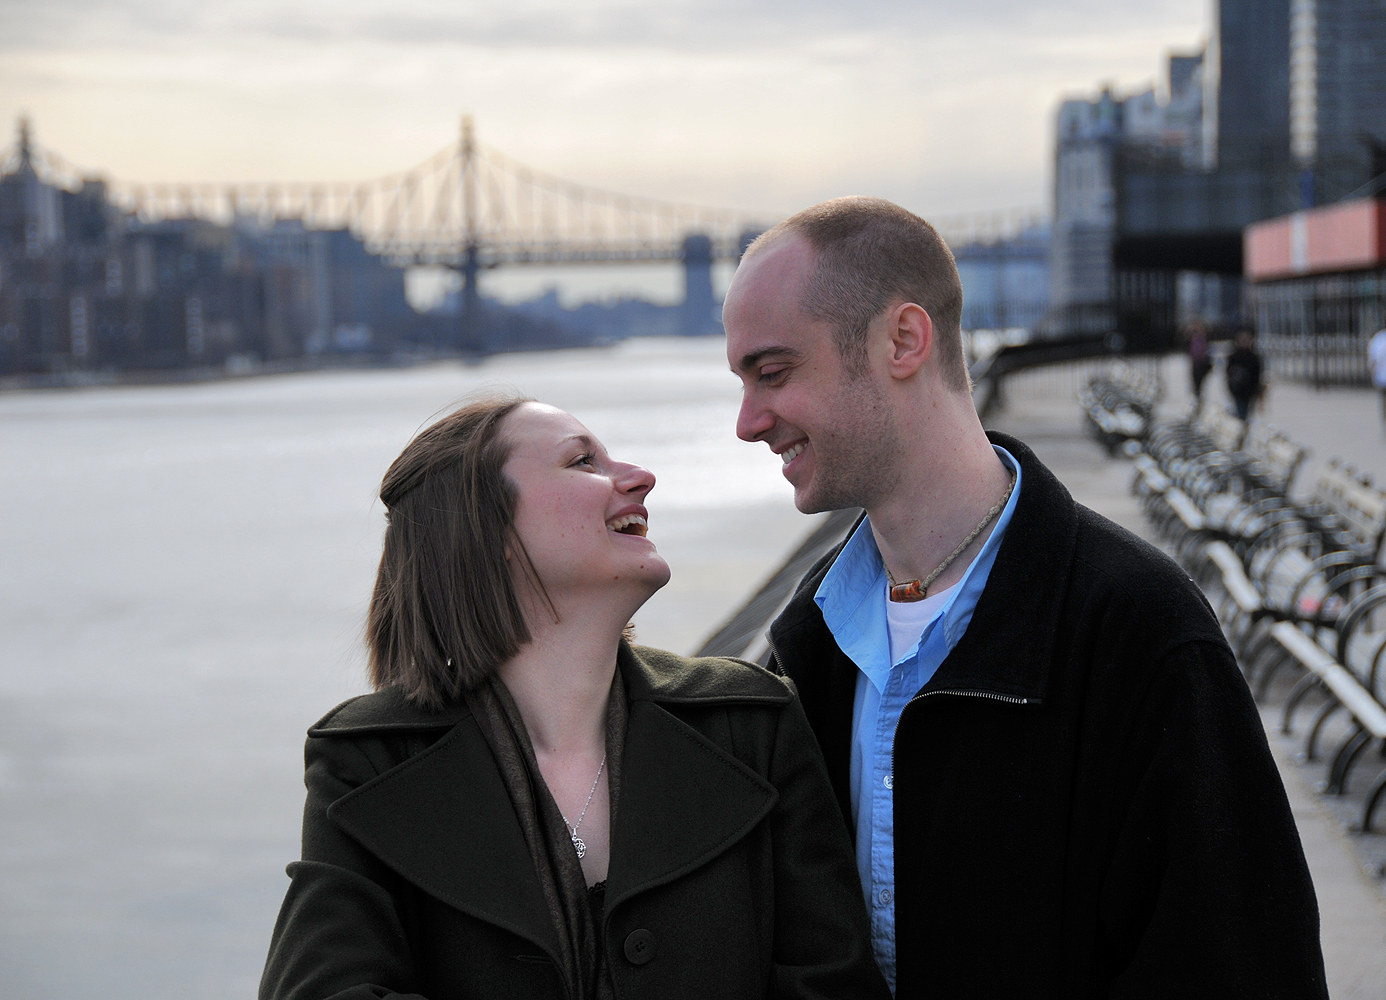 couple laughing nyc bridge 1000